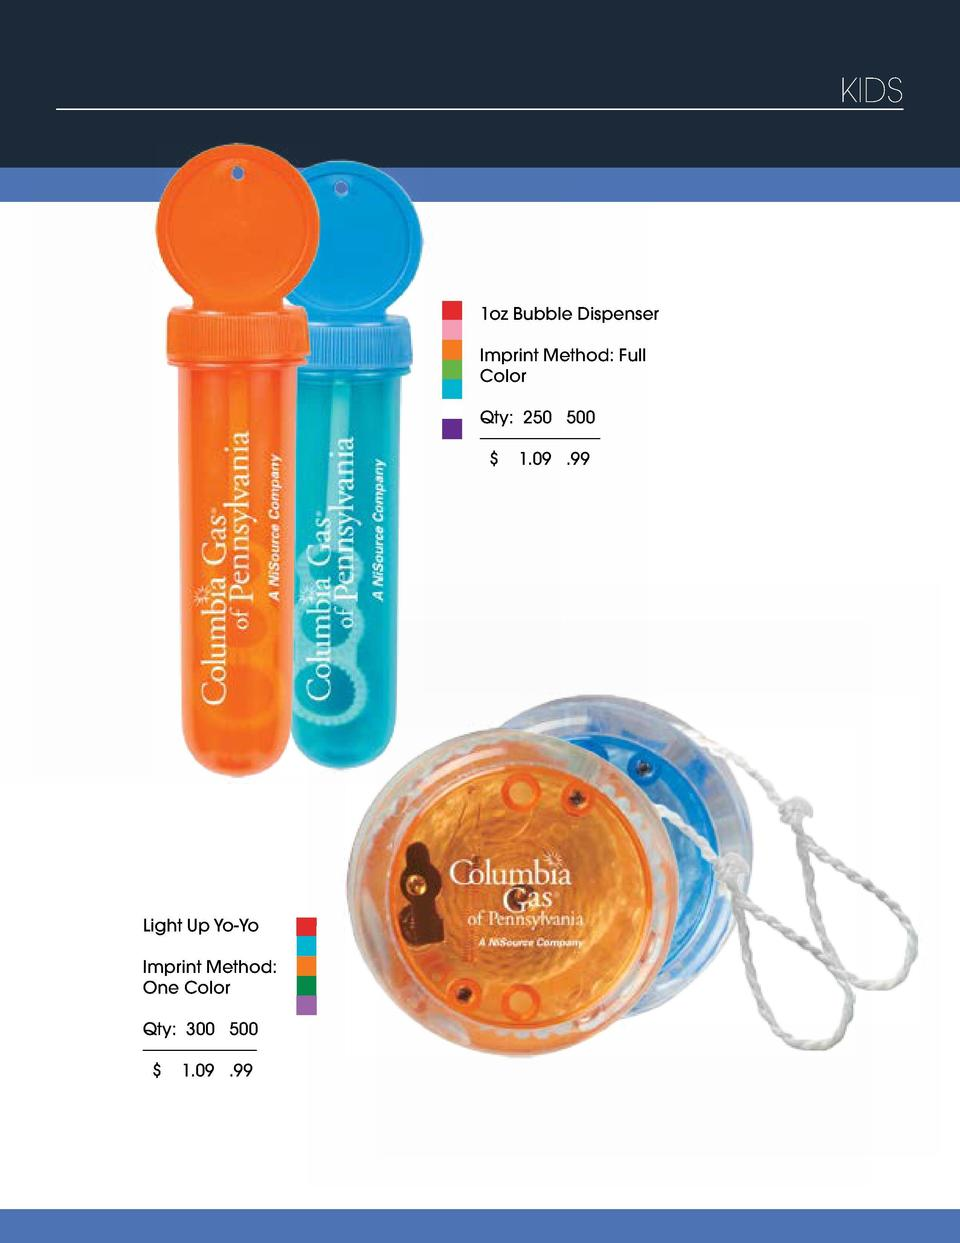 KIDS  Amazing Brownie Bites Combo  1oz Bubble Dispenser  Imprint Method  Digital  Imprint Method  Full Color  Please conta...